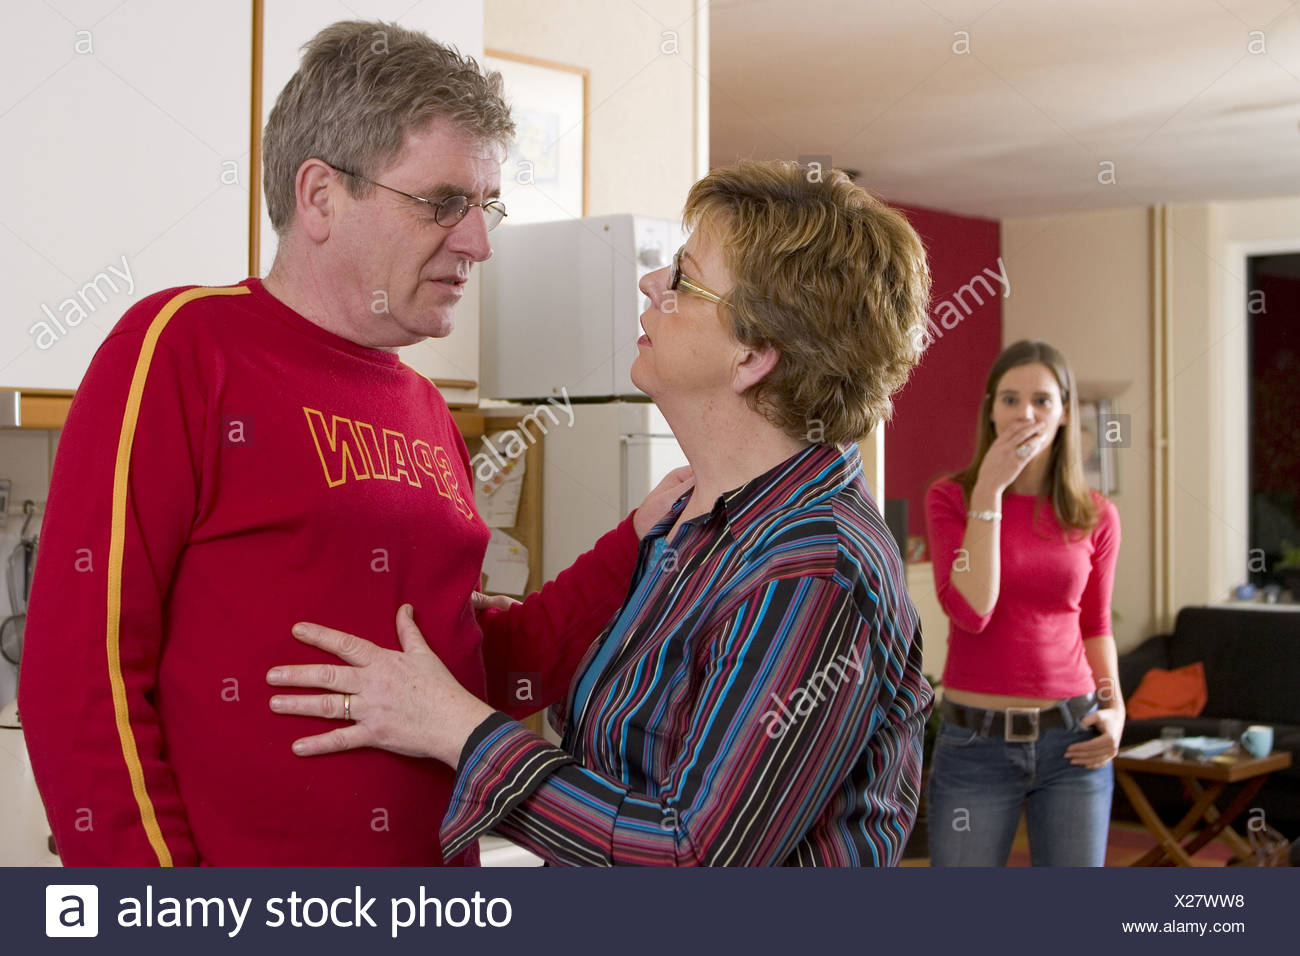 Secret affair, woman finds out cheating dad SerieCVS217053 - Stock Image